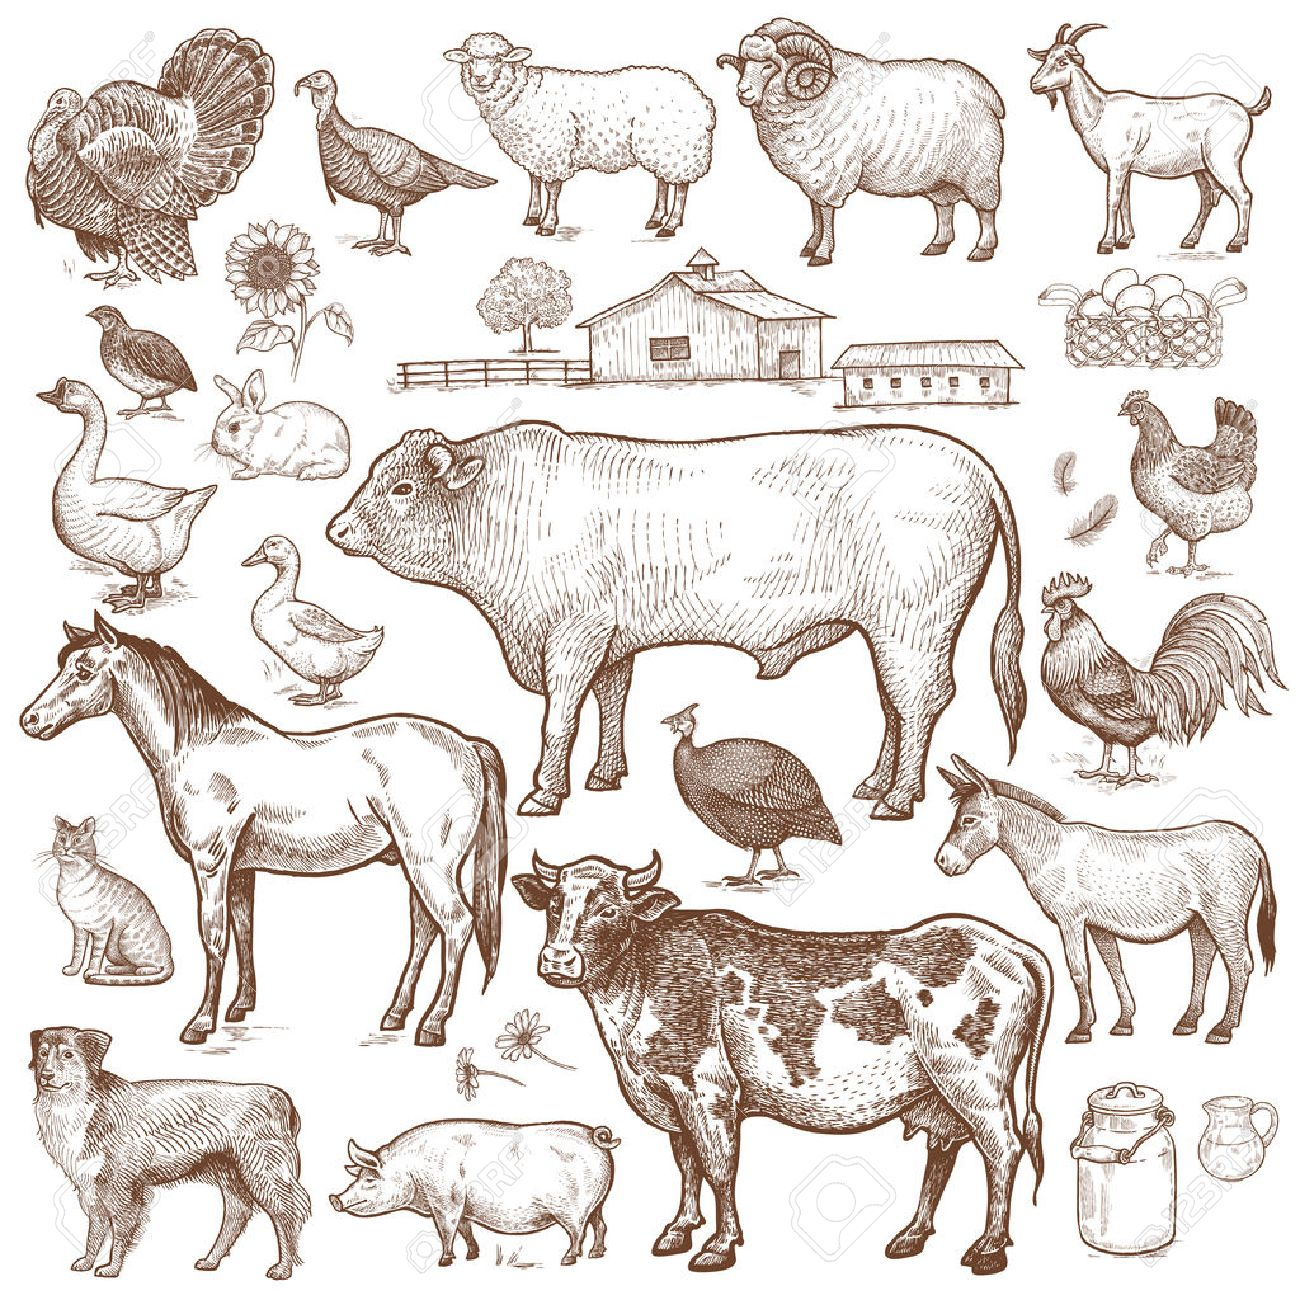 Vector large set farm theme. Animals cattle, poultry, pets, landscape. Objects of nature isolated on white background. Drawings for text illustration, decoupage, design covers, signage, posters. - 67176534